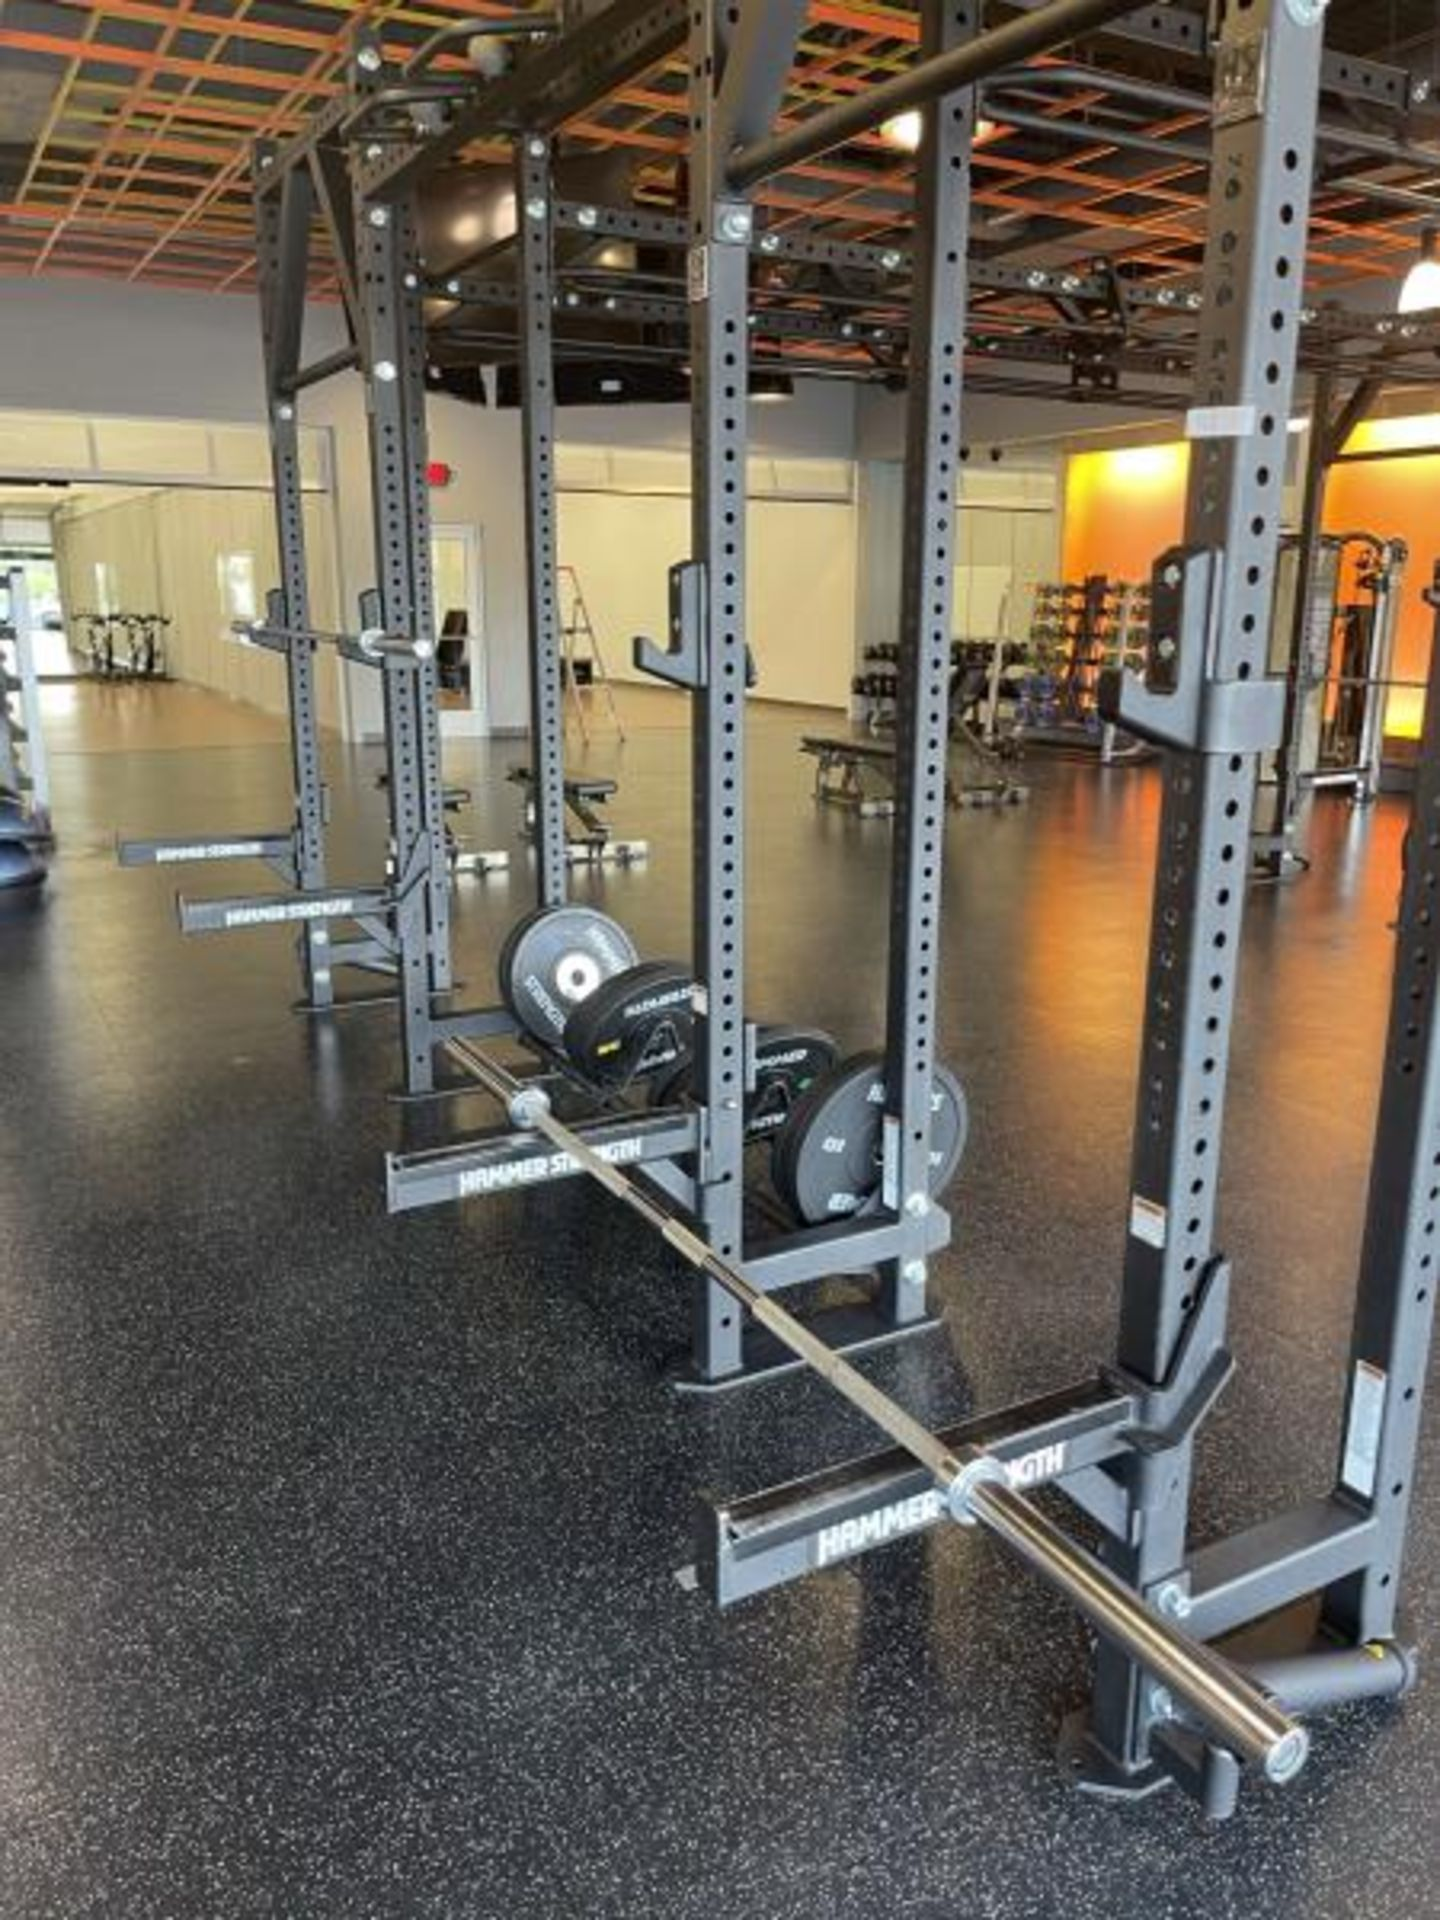 Hammer Strength Multi Station Cage with Hammer Strength Weighted Plates, 4 Bars - Image 2 of 11